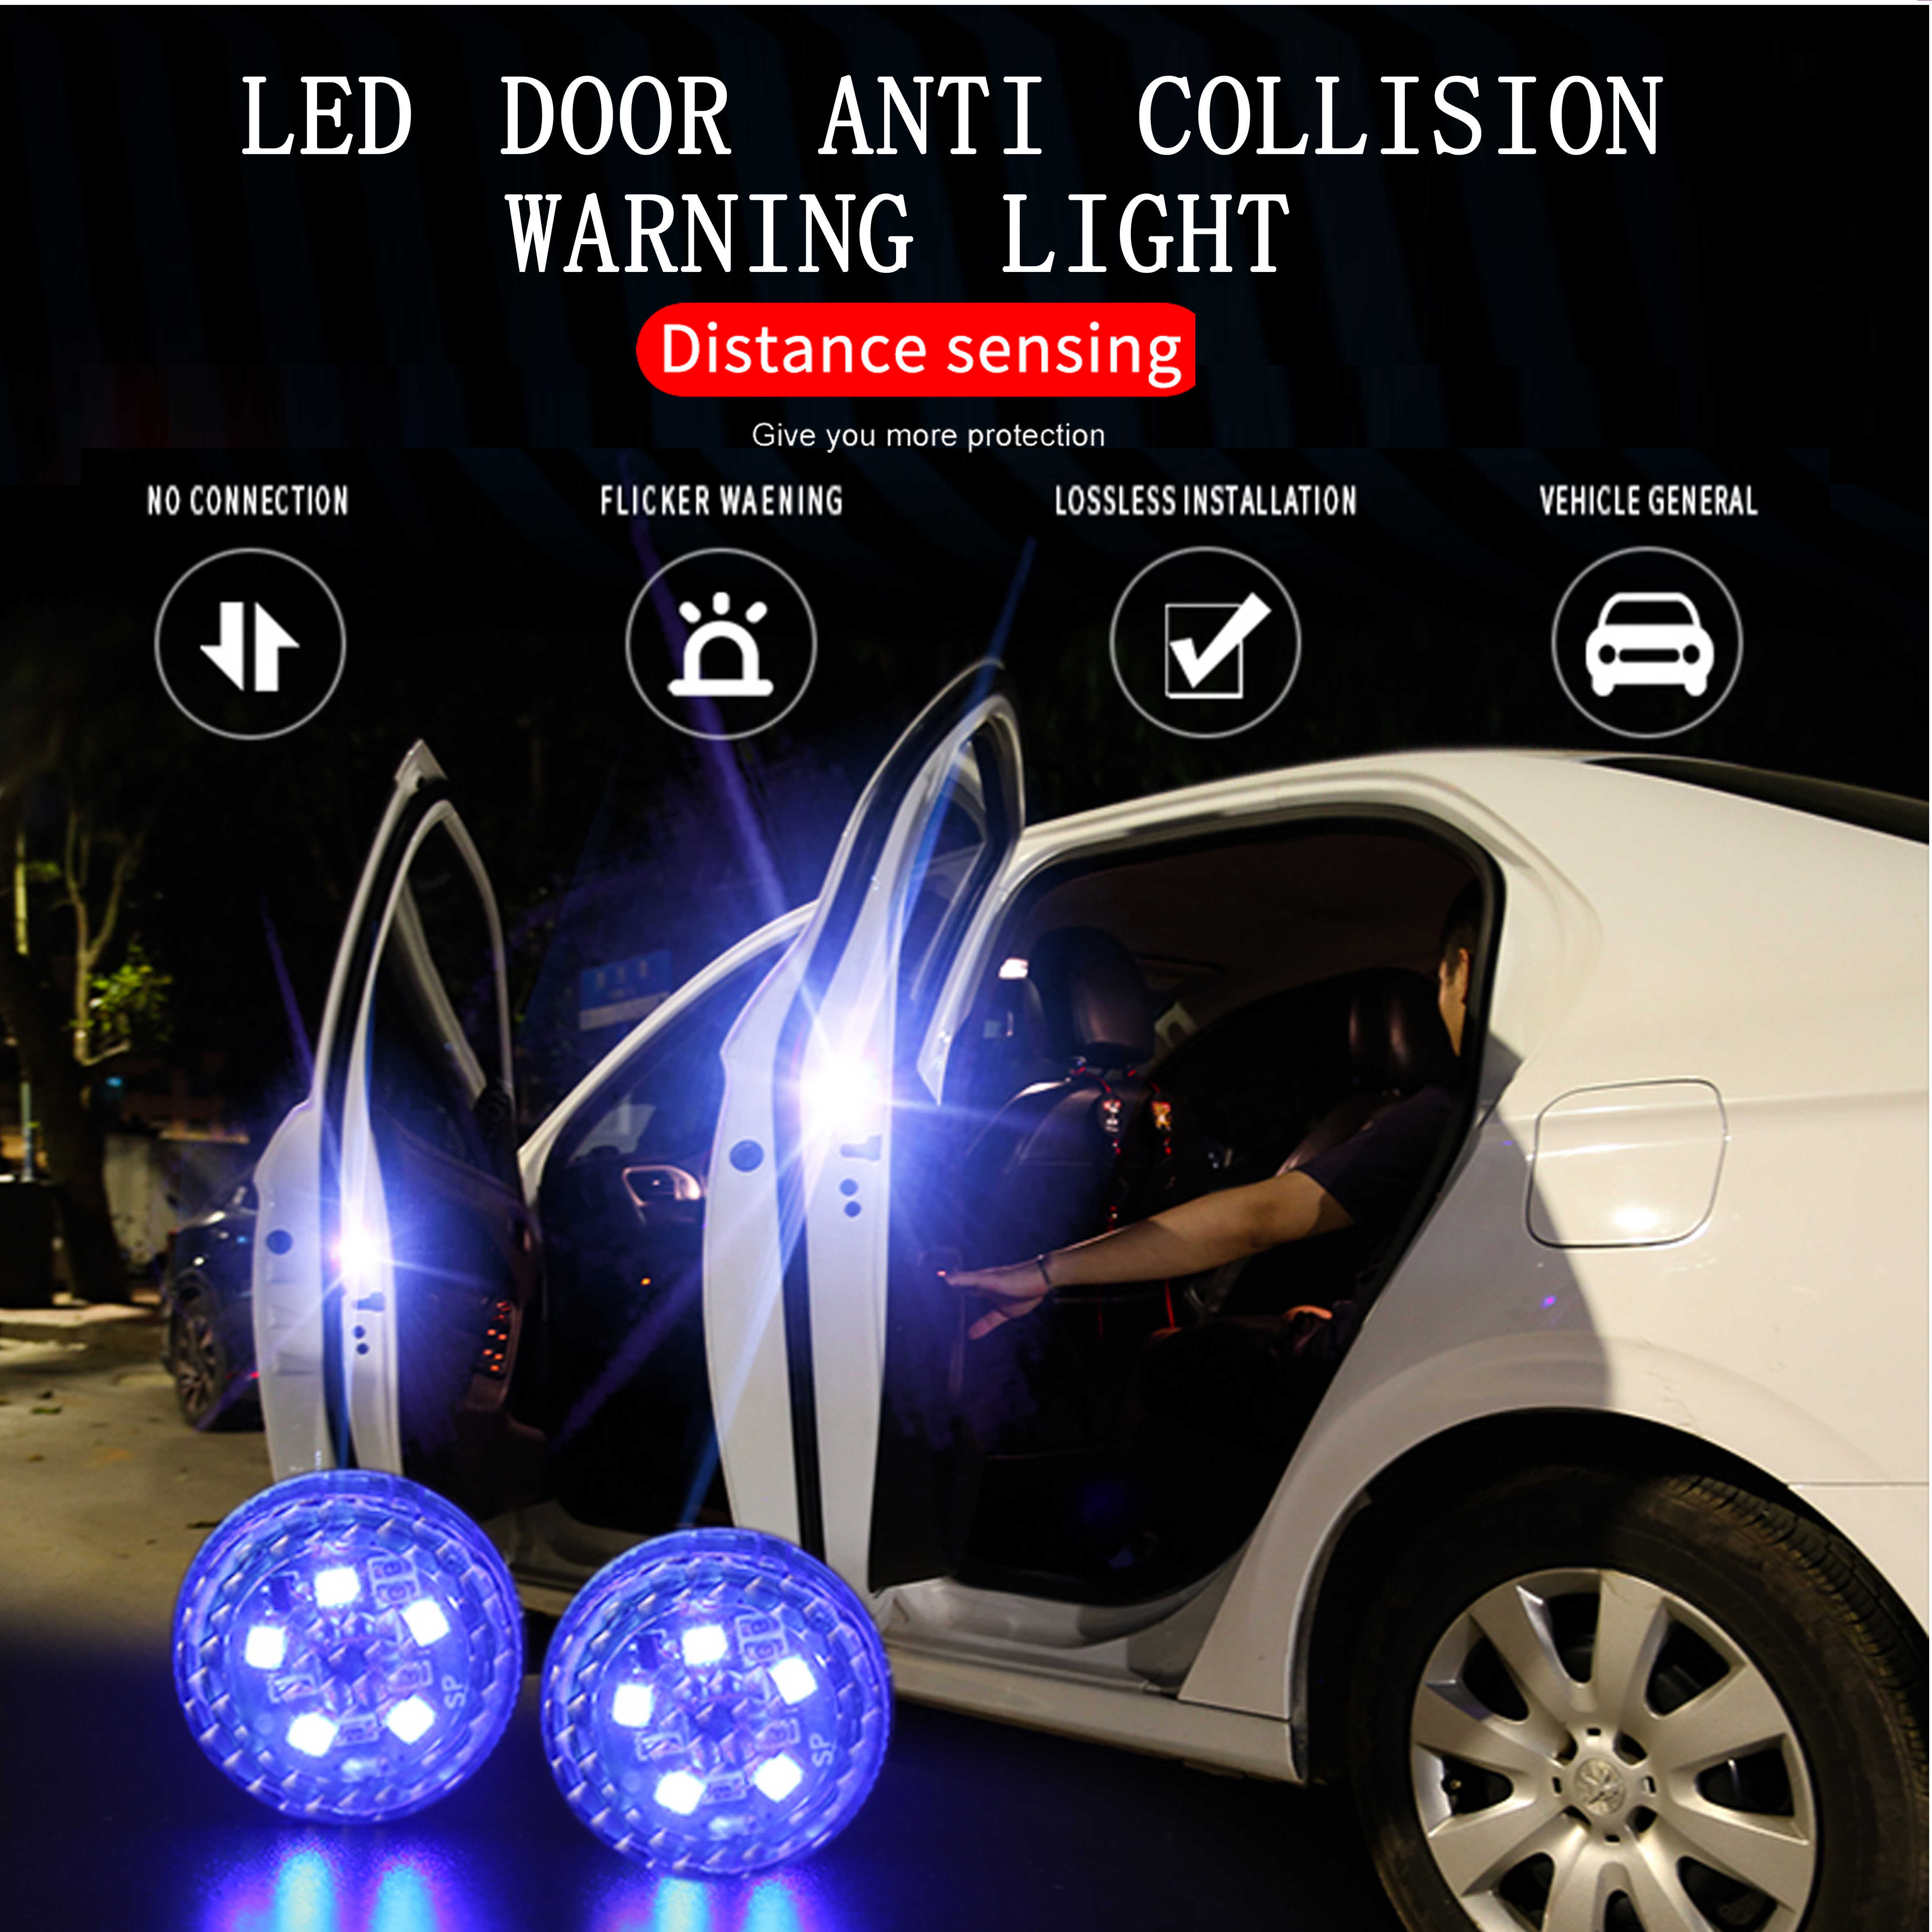 SMKJ Universal Car Door Wireless Safety LED Light Warning Door Light Red LED Strobe Flicker for Anti rear-end Collision Magnetic induction switch Easy installation No Wiring